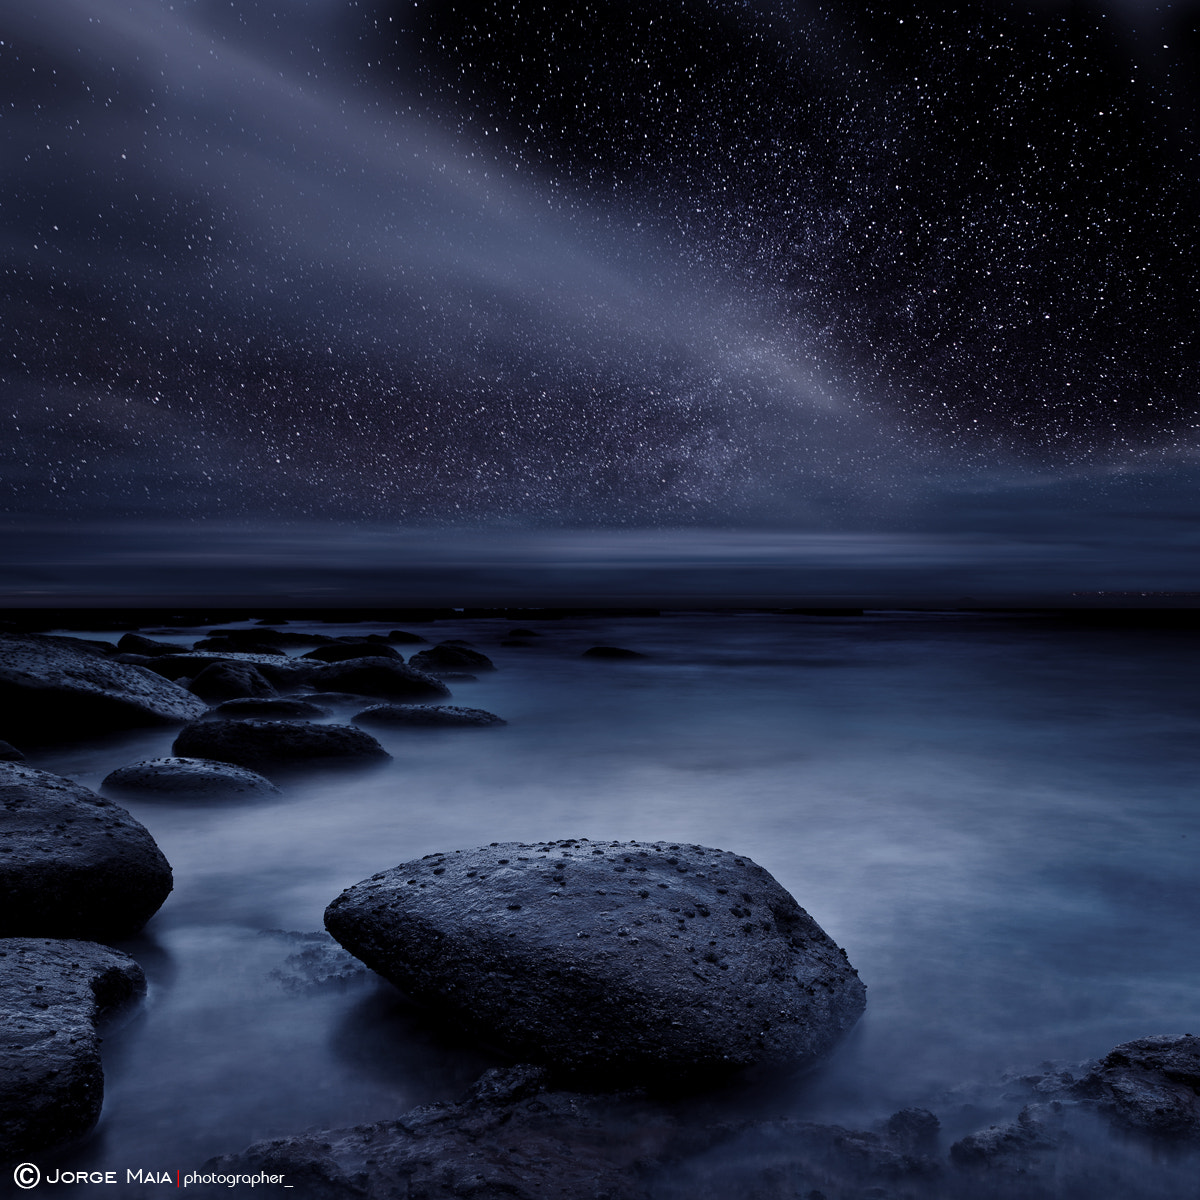 Photograph The birth of creation by Jorge Maia on 500px